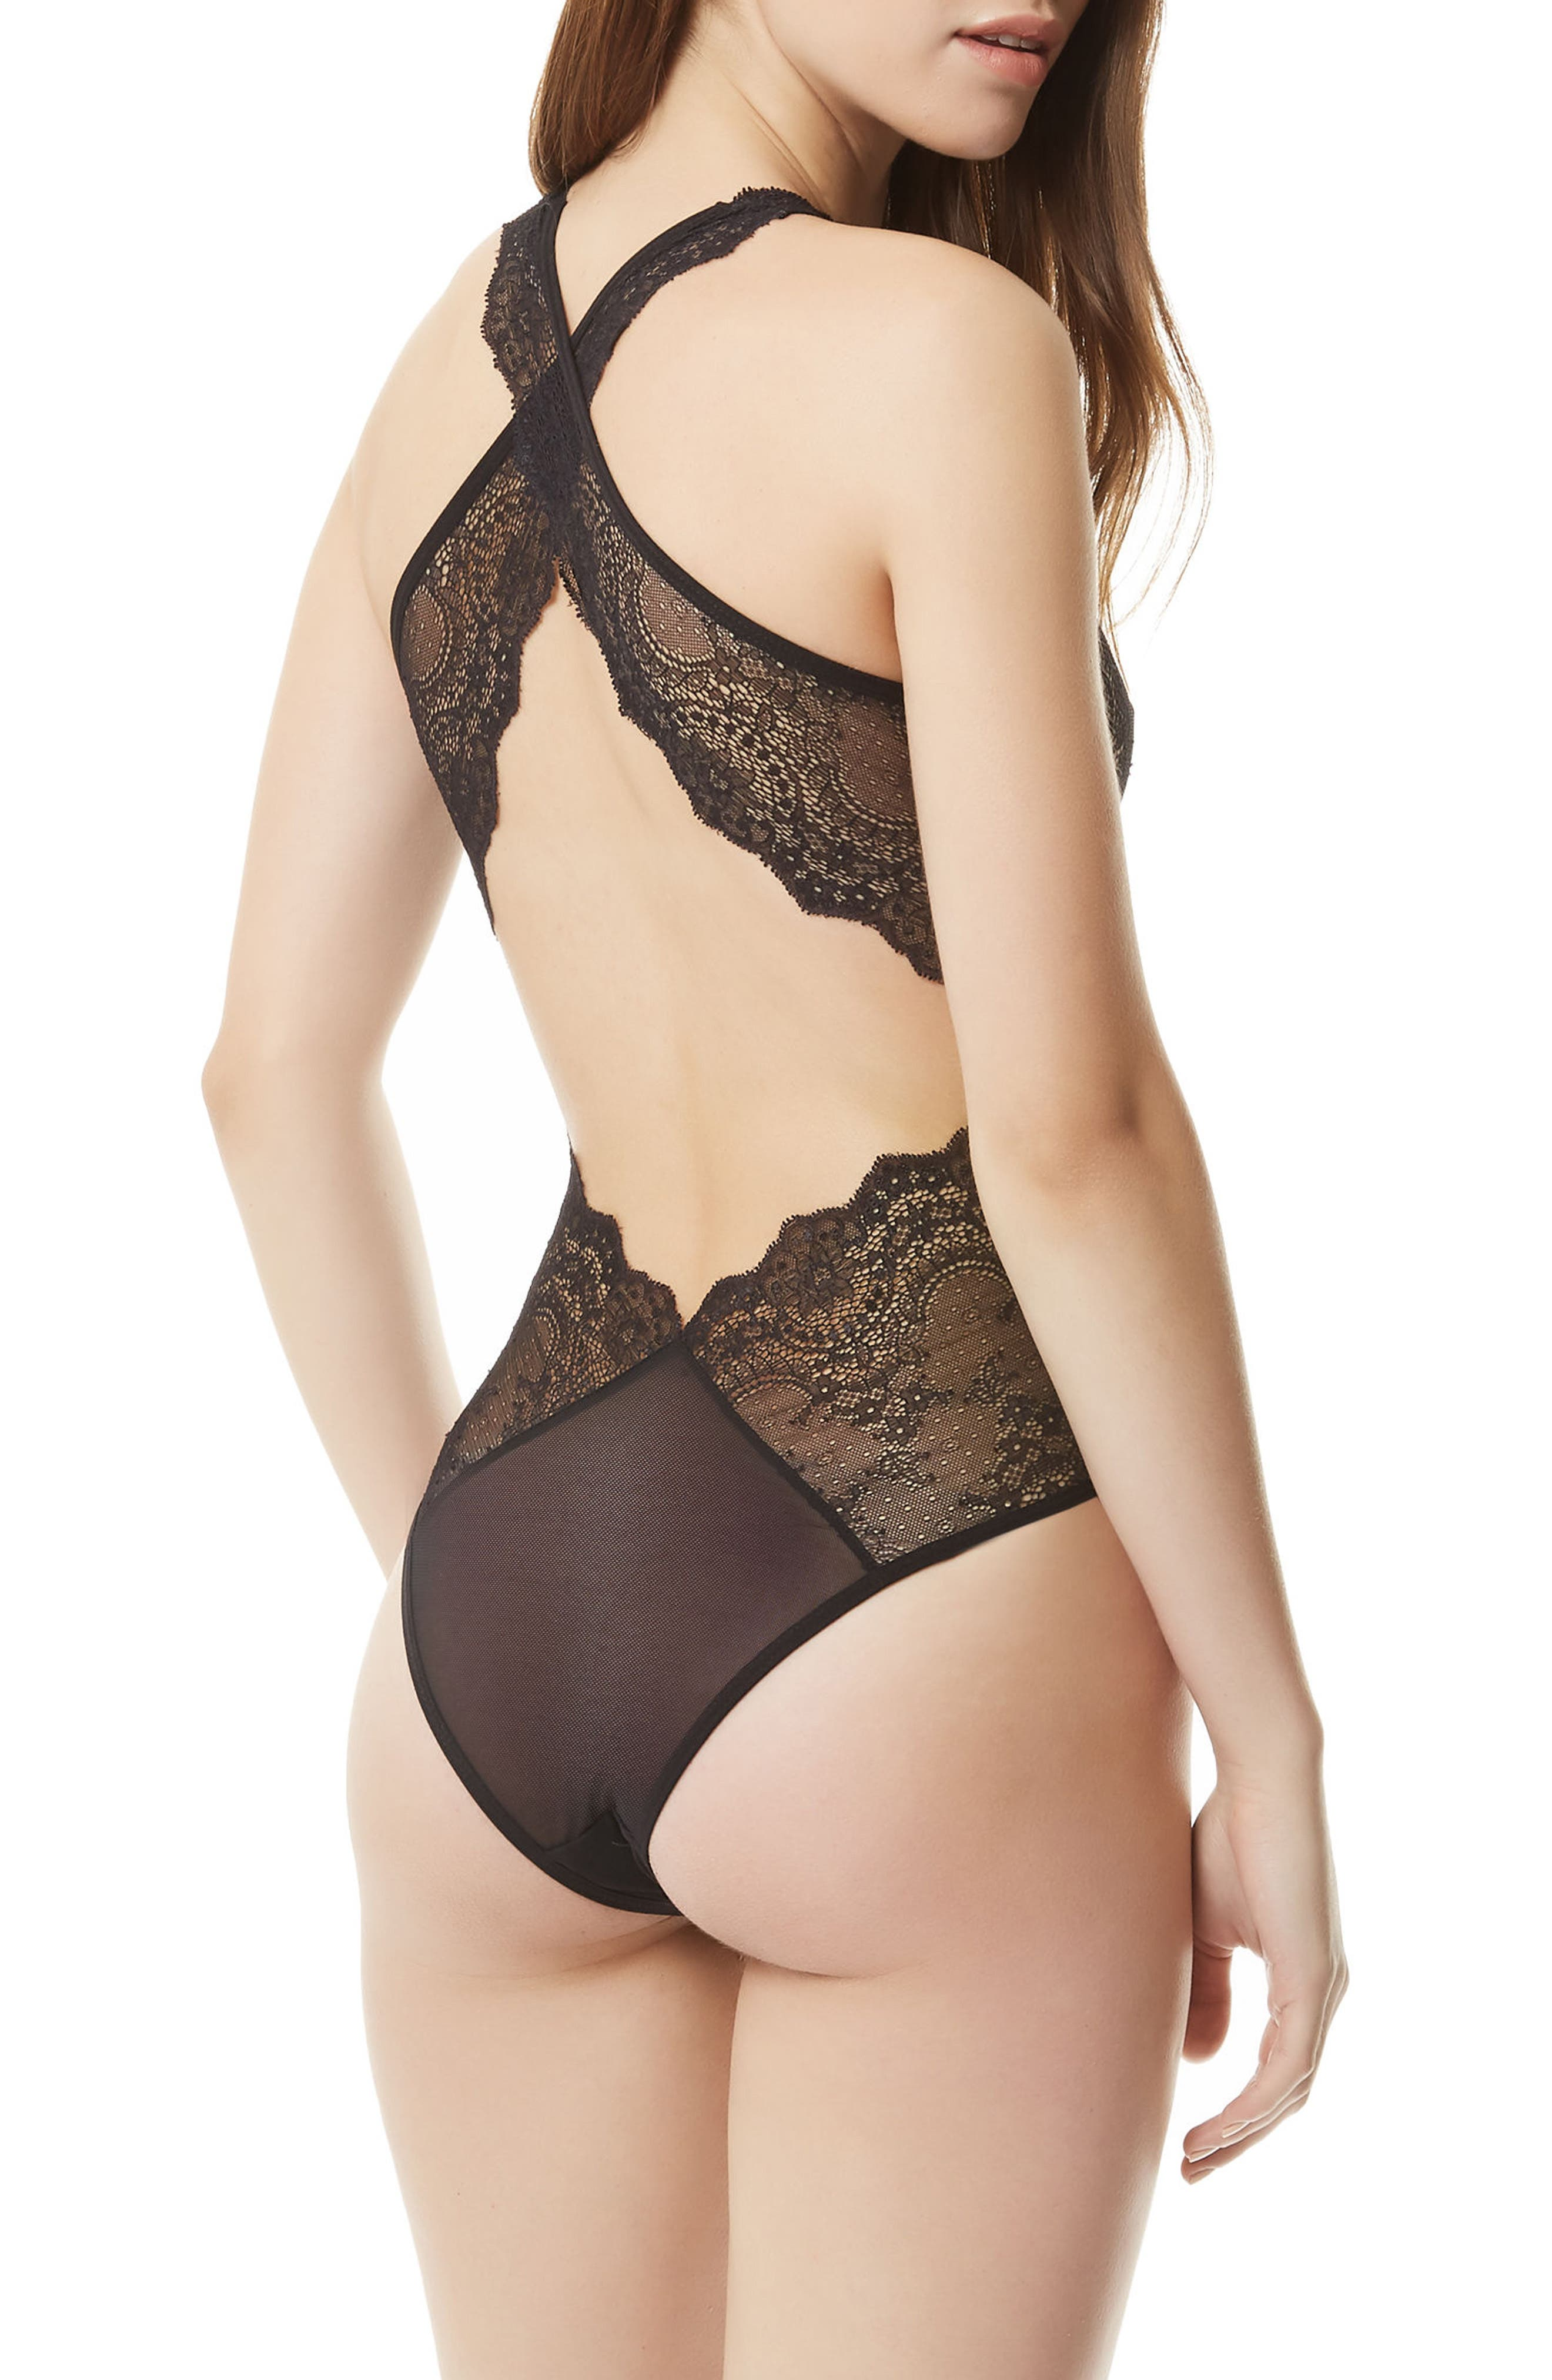 Adrienne Halter Teddy,                             Alternate thumbnail 2, color,                             Black